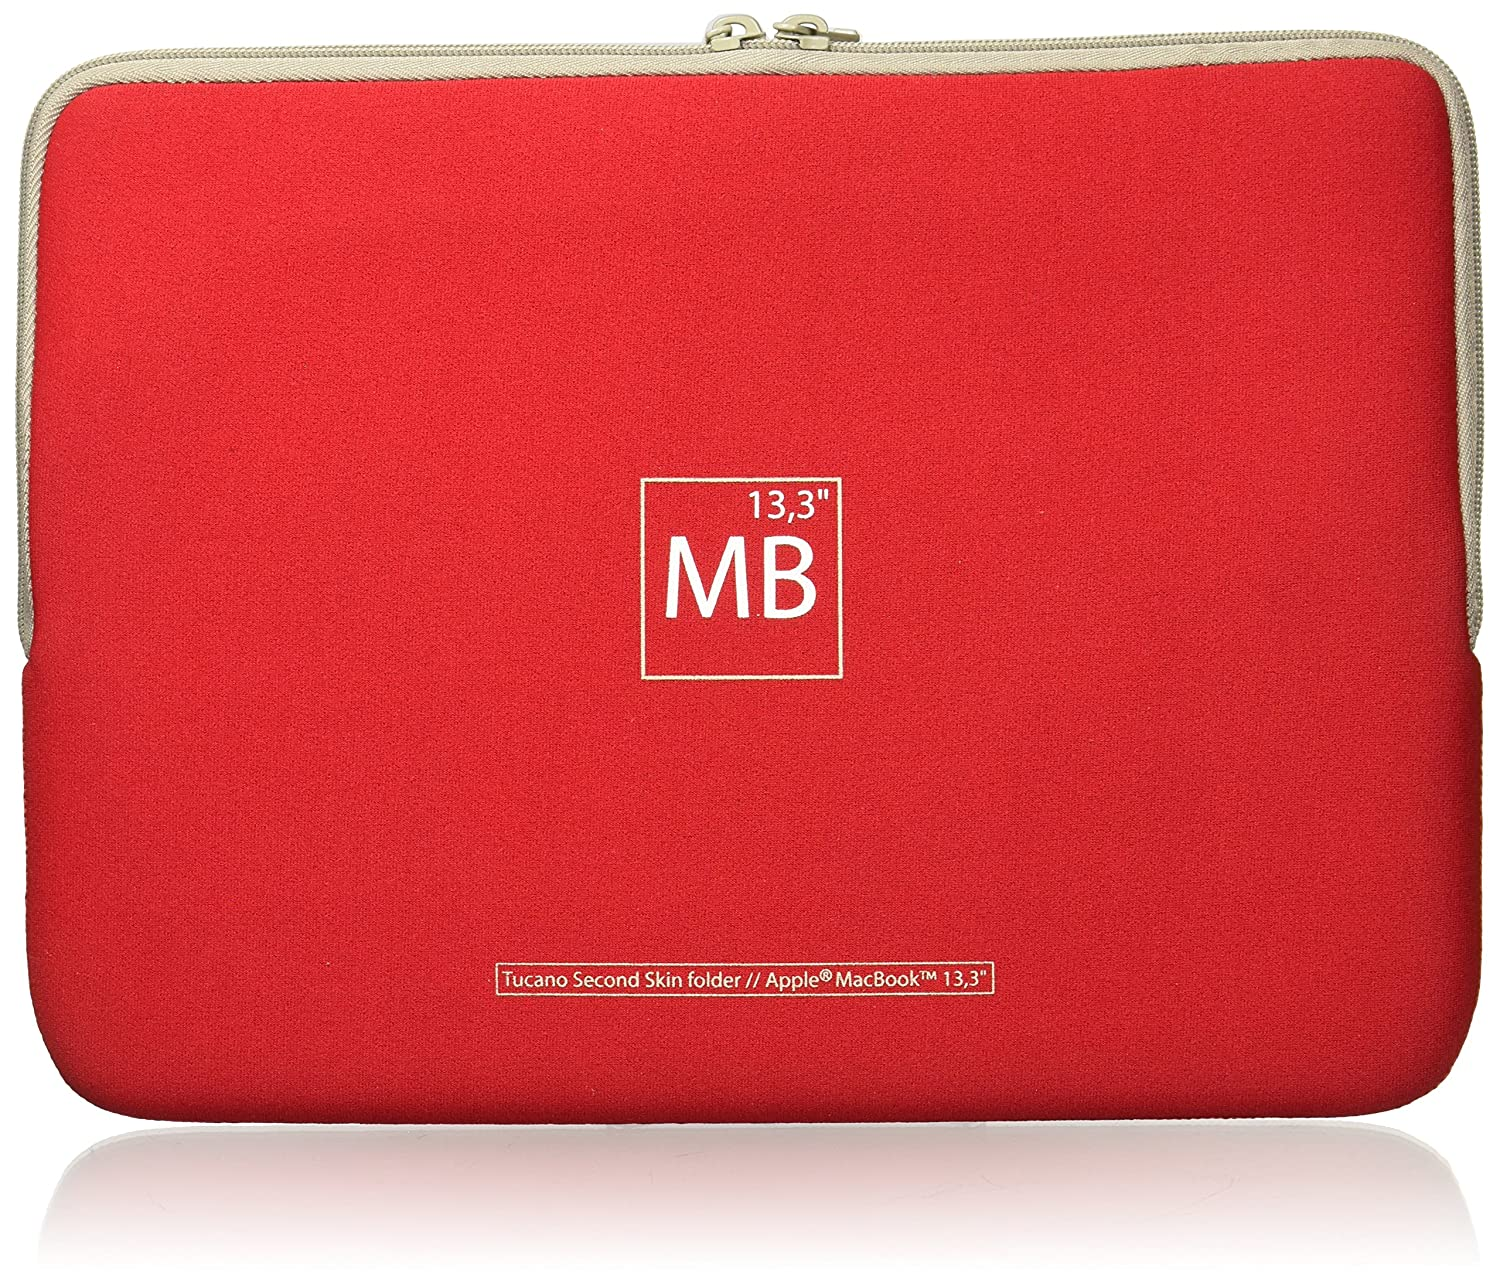 Tucano Red Mb Sleeve Macbook 13 3 Buy Tucano Red Mb Sleeve Macbook 13 3 Online At Low Price In India Amazon In